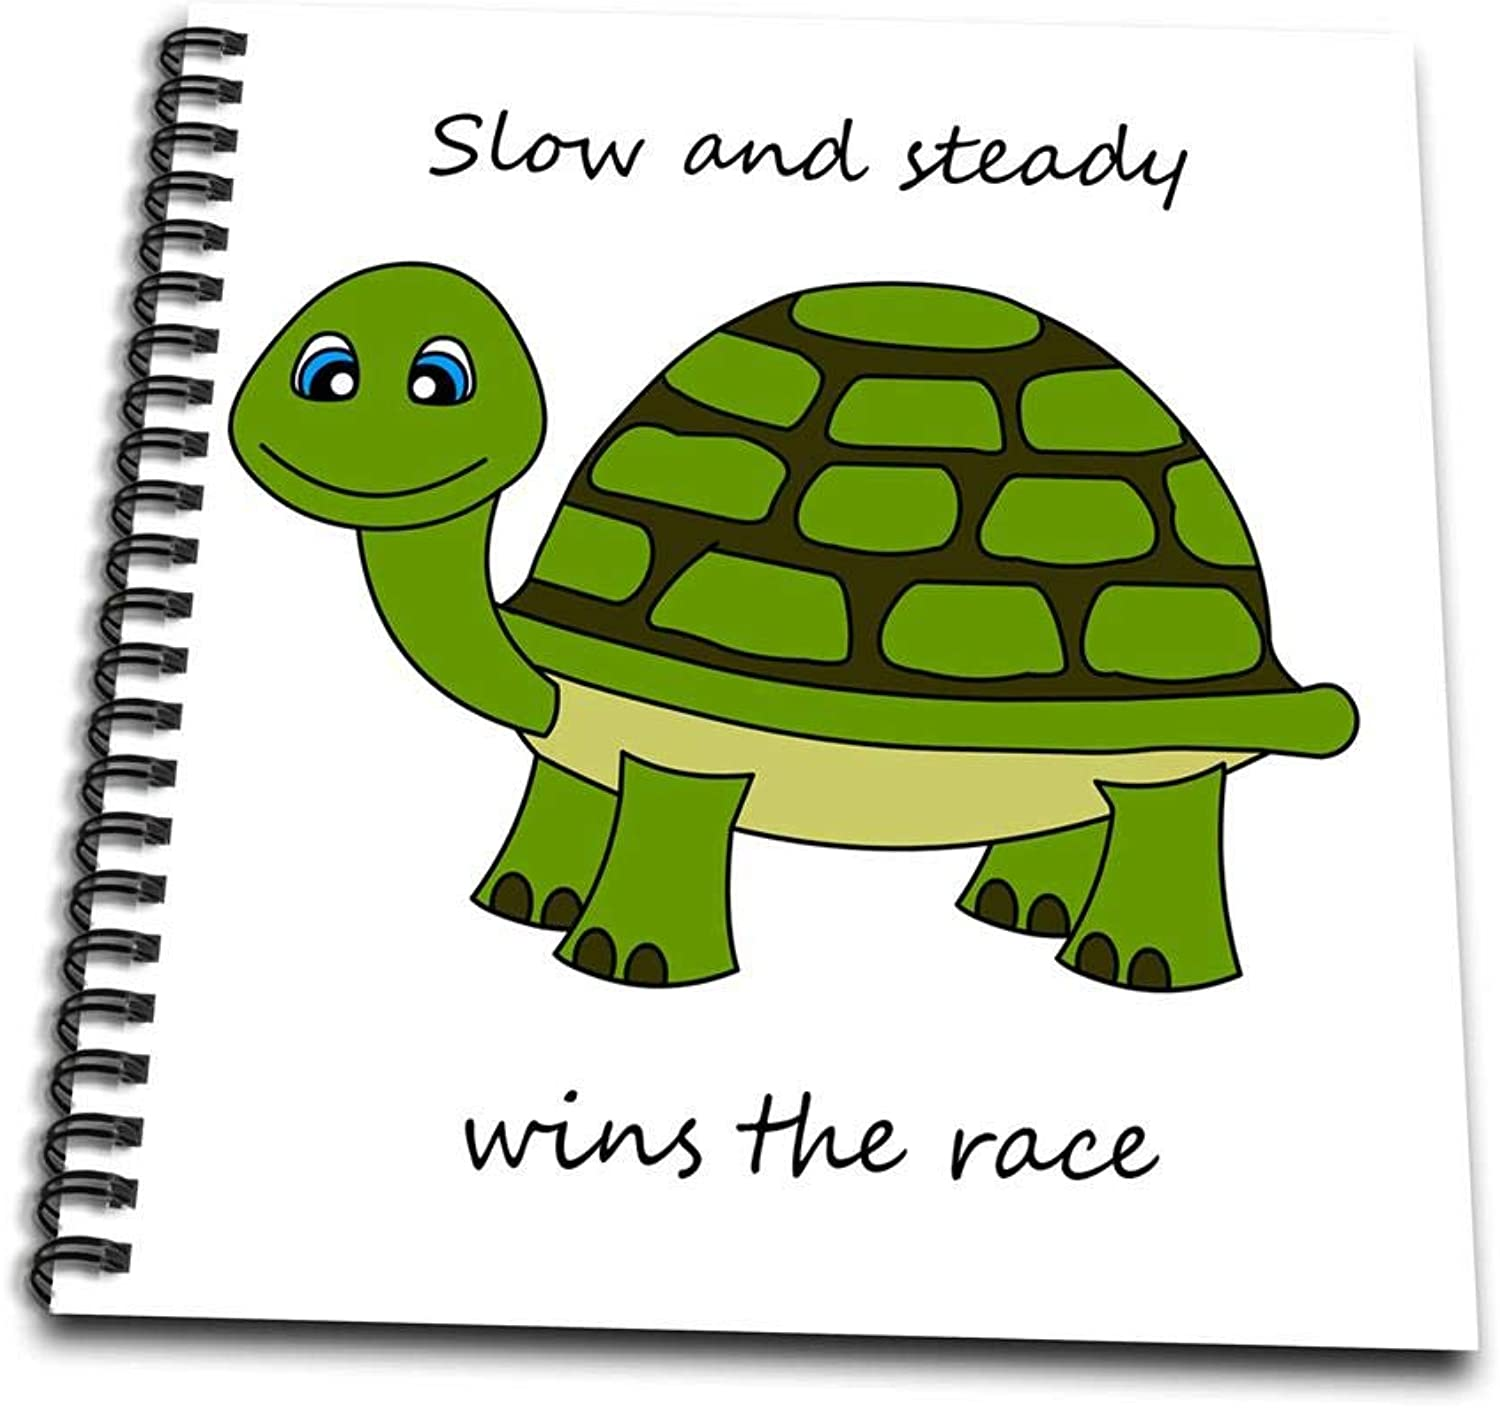 3dpink db_6106_1 Slow and Steady wins The Race  Green TurtleDrawing Book, 8 by 8